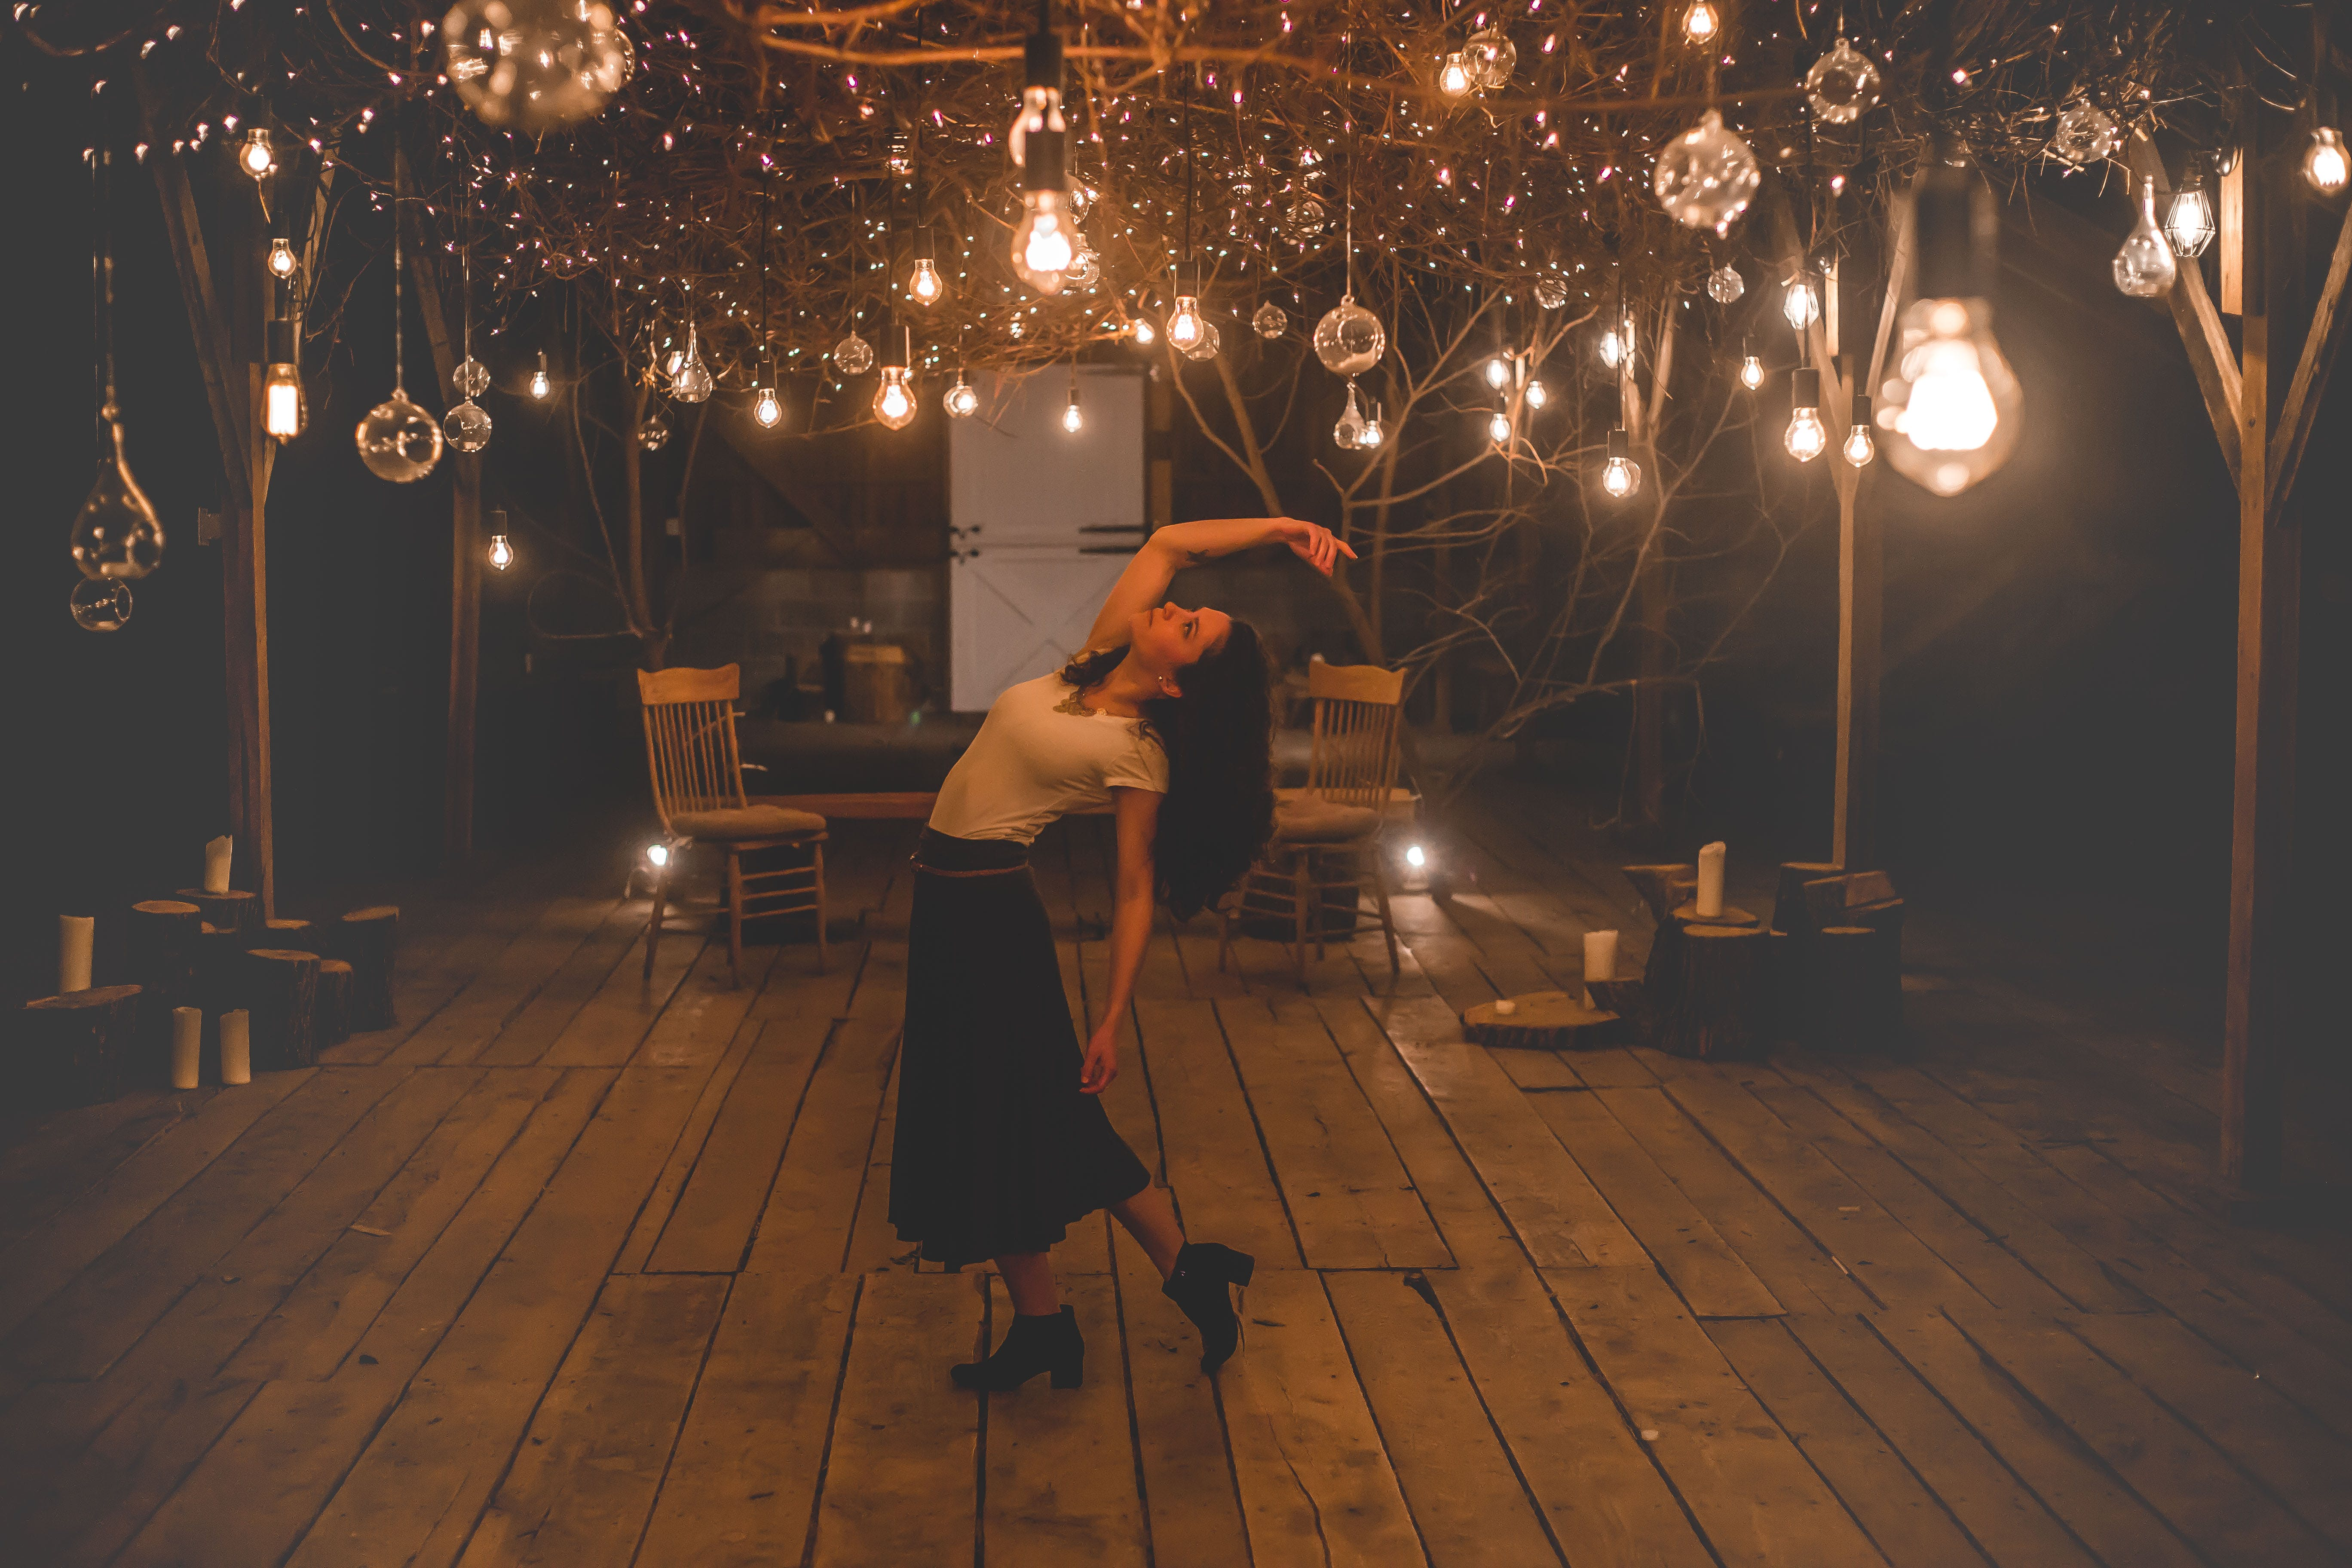 Woman Dancing on Terrace With Lights Turned-on